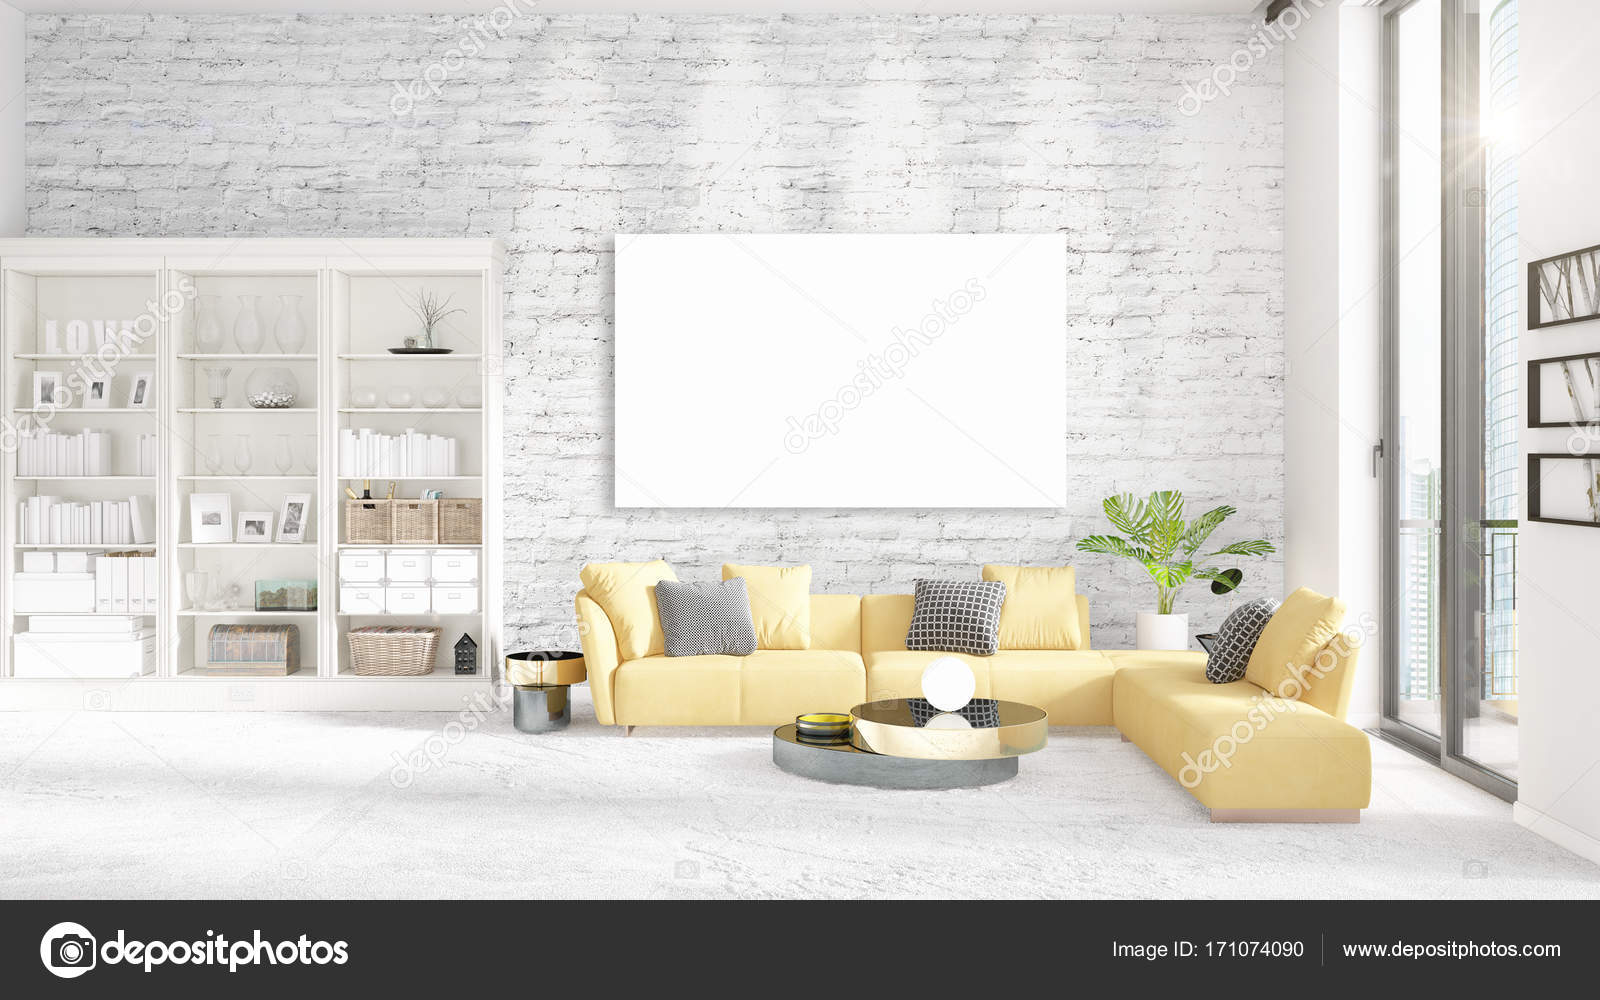 . Interior with view  luxury yellow home furnishings  empty frame and